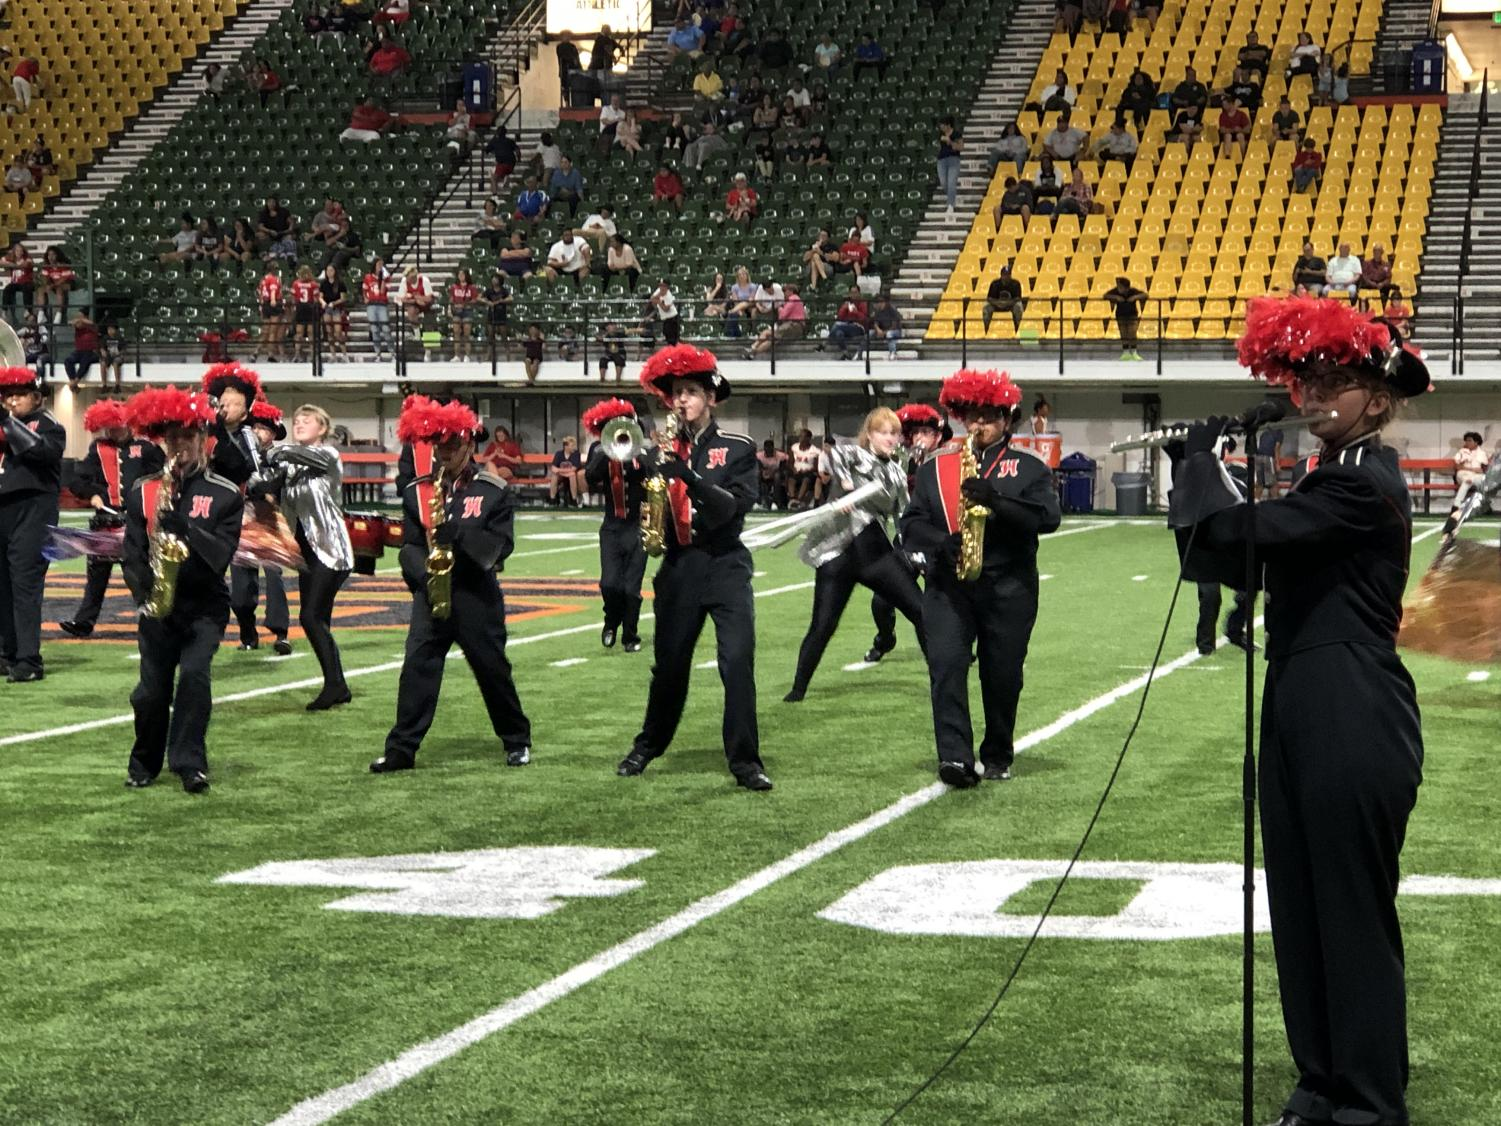 Marching+band+performance+at+ISU+holt+arena.+Saturday%2C+8%3A40+p.m.